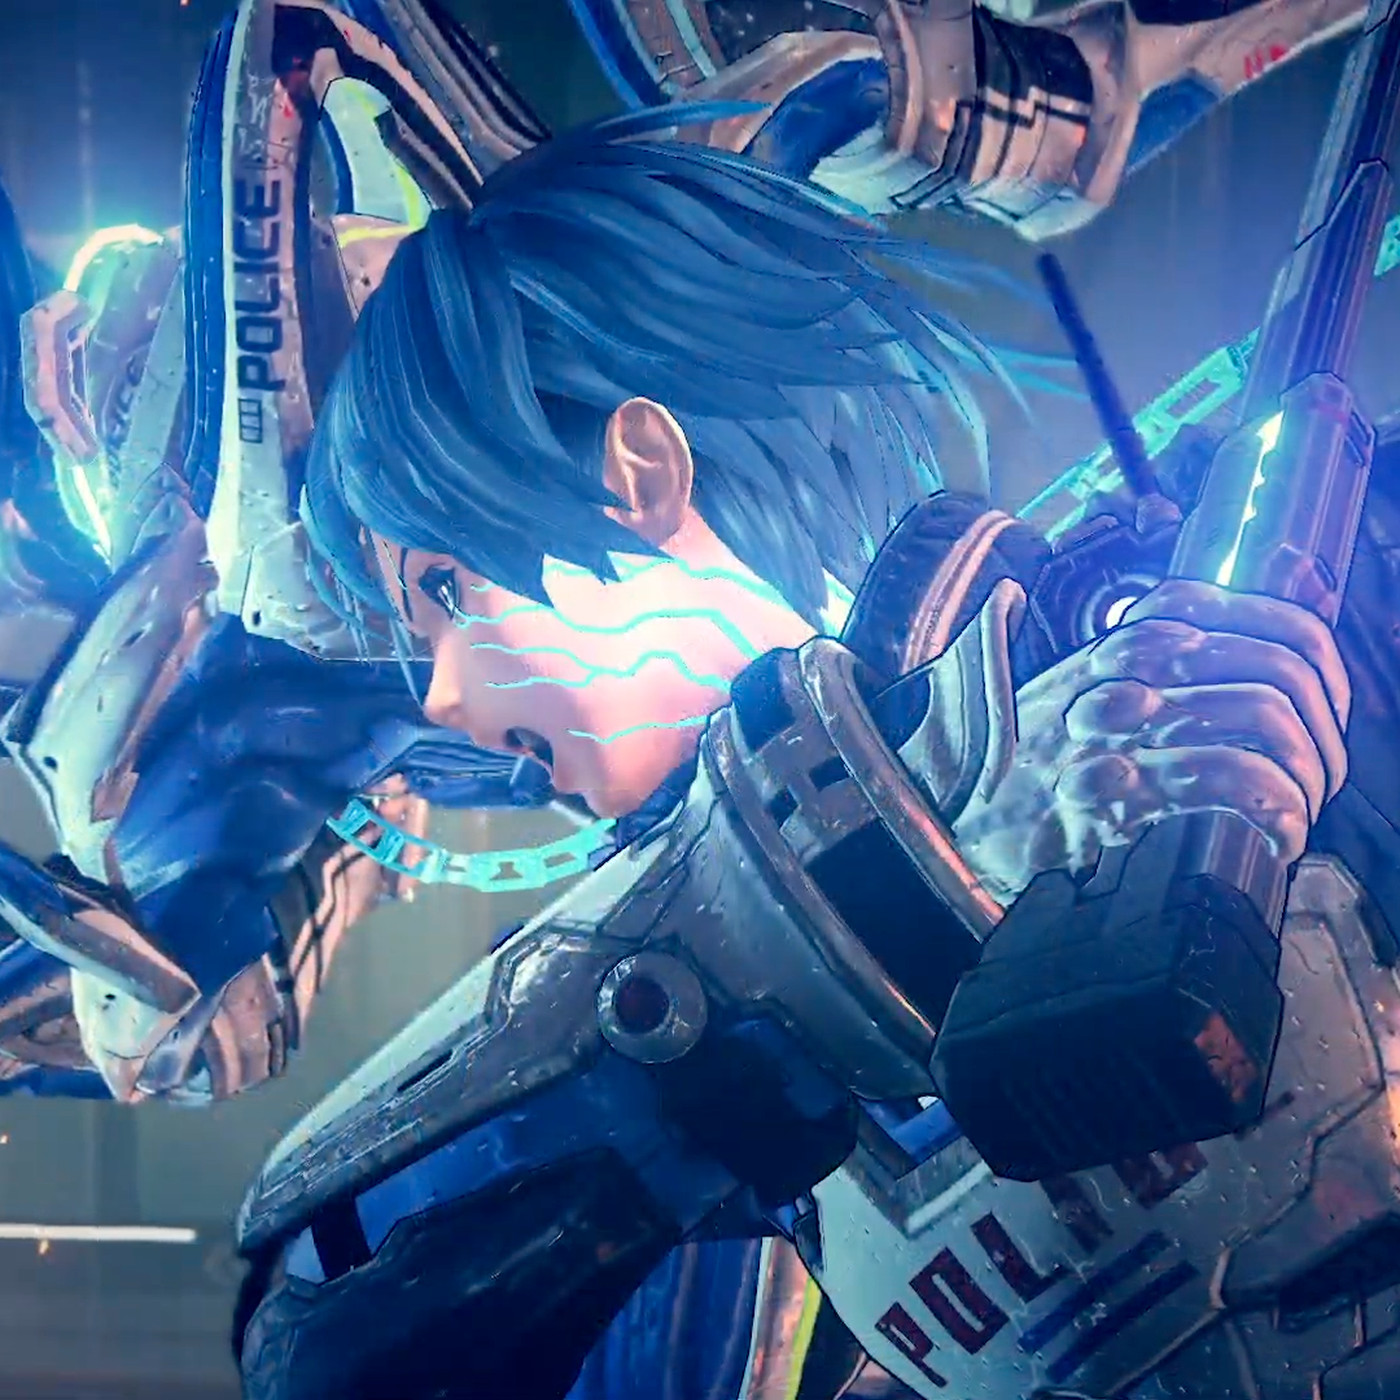 Astral Chain From Platinum Games Launches Aug 30 On Switch